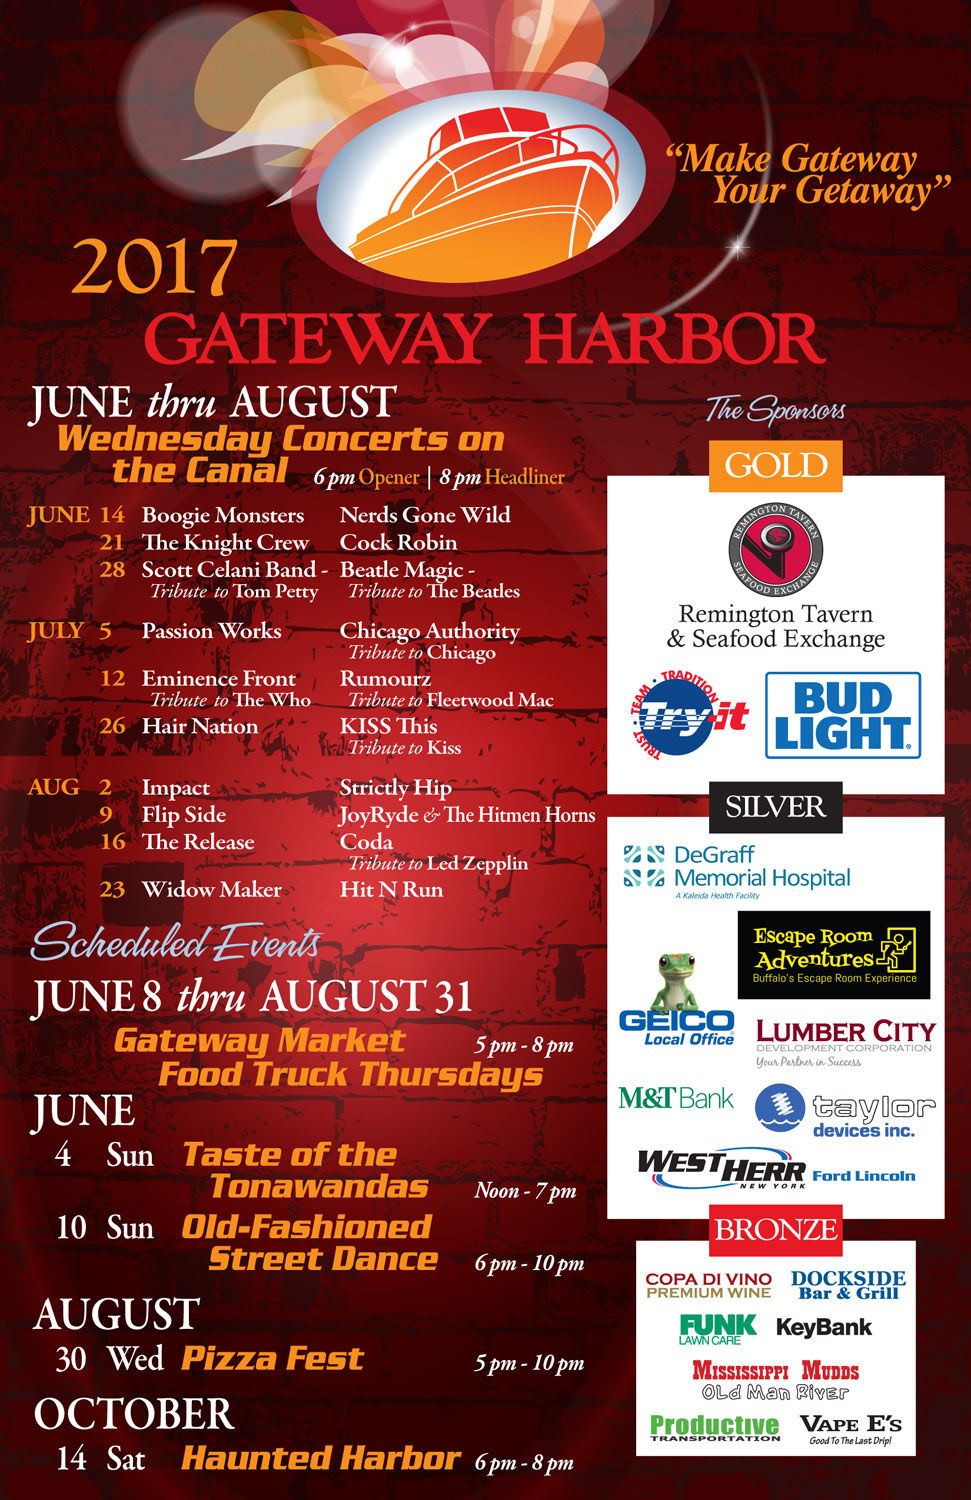 Wednesday Concerts on the Canal